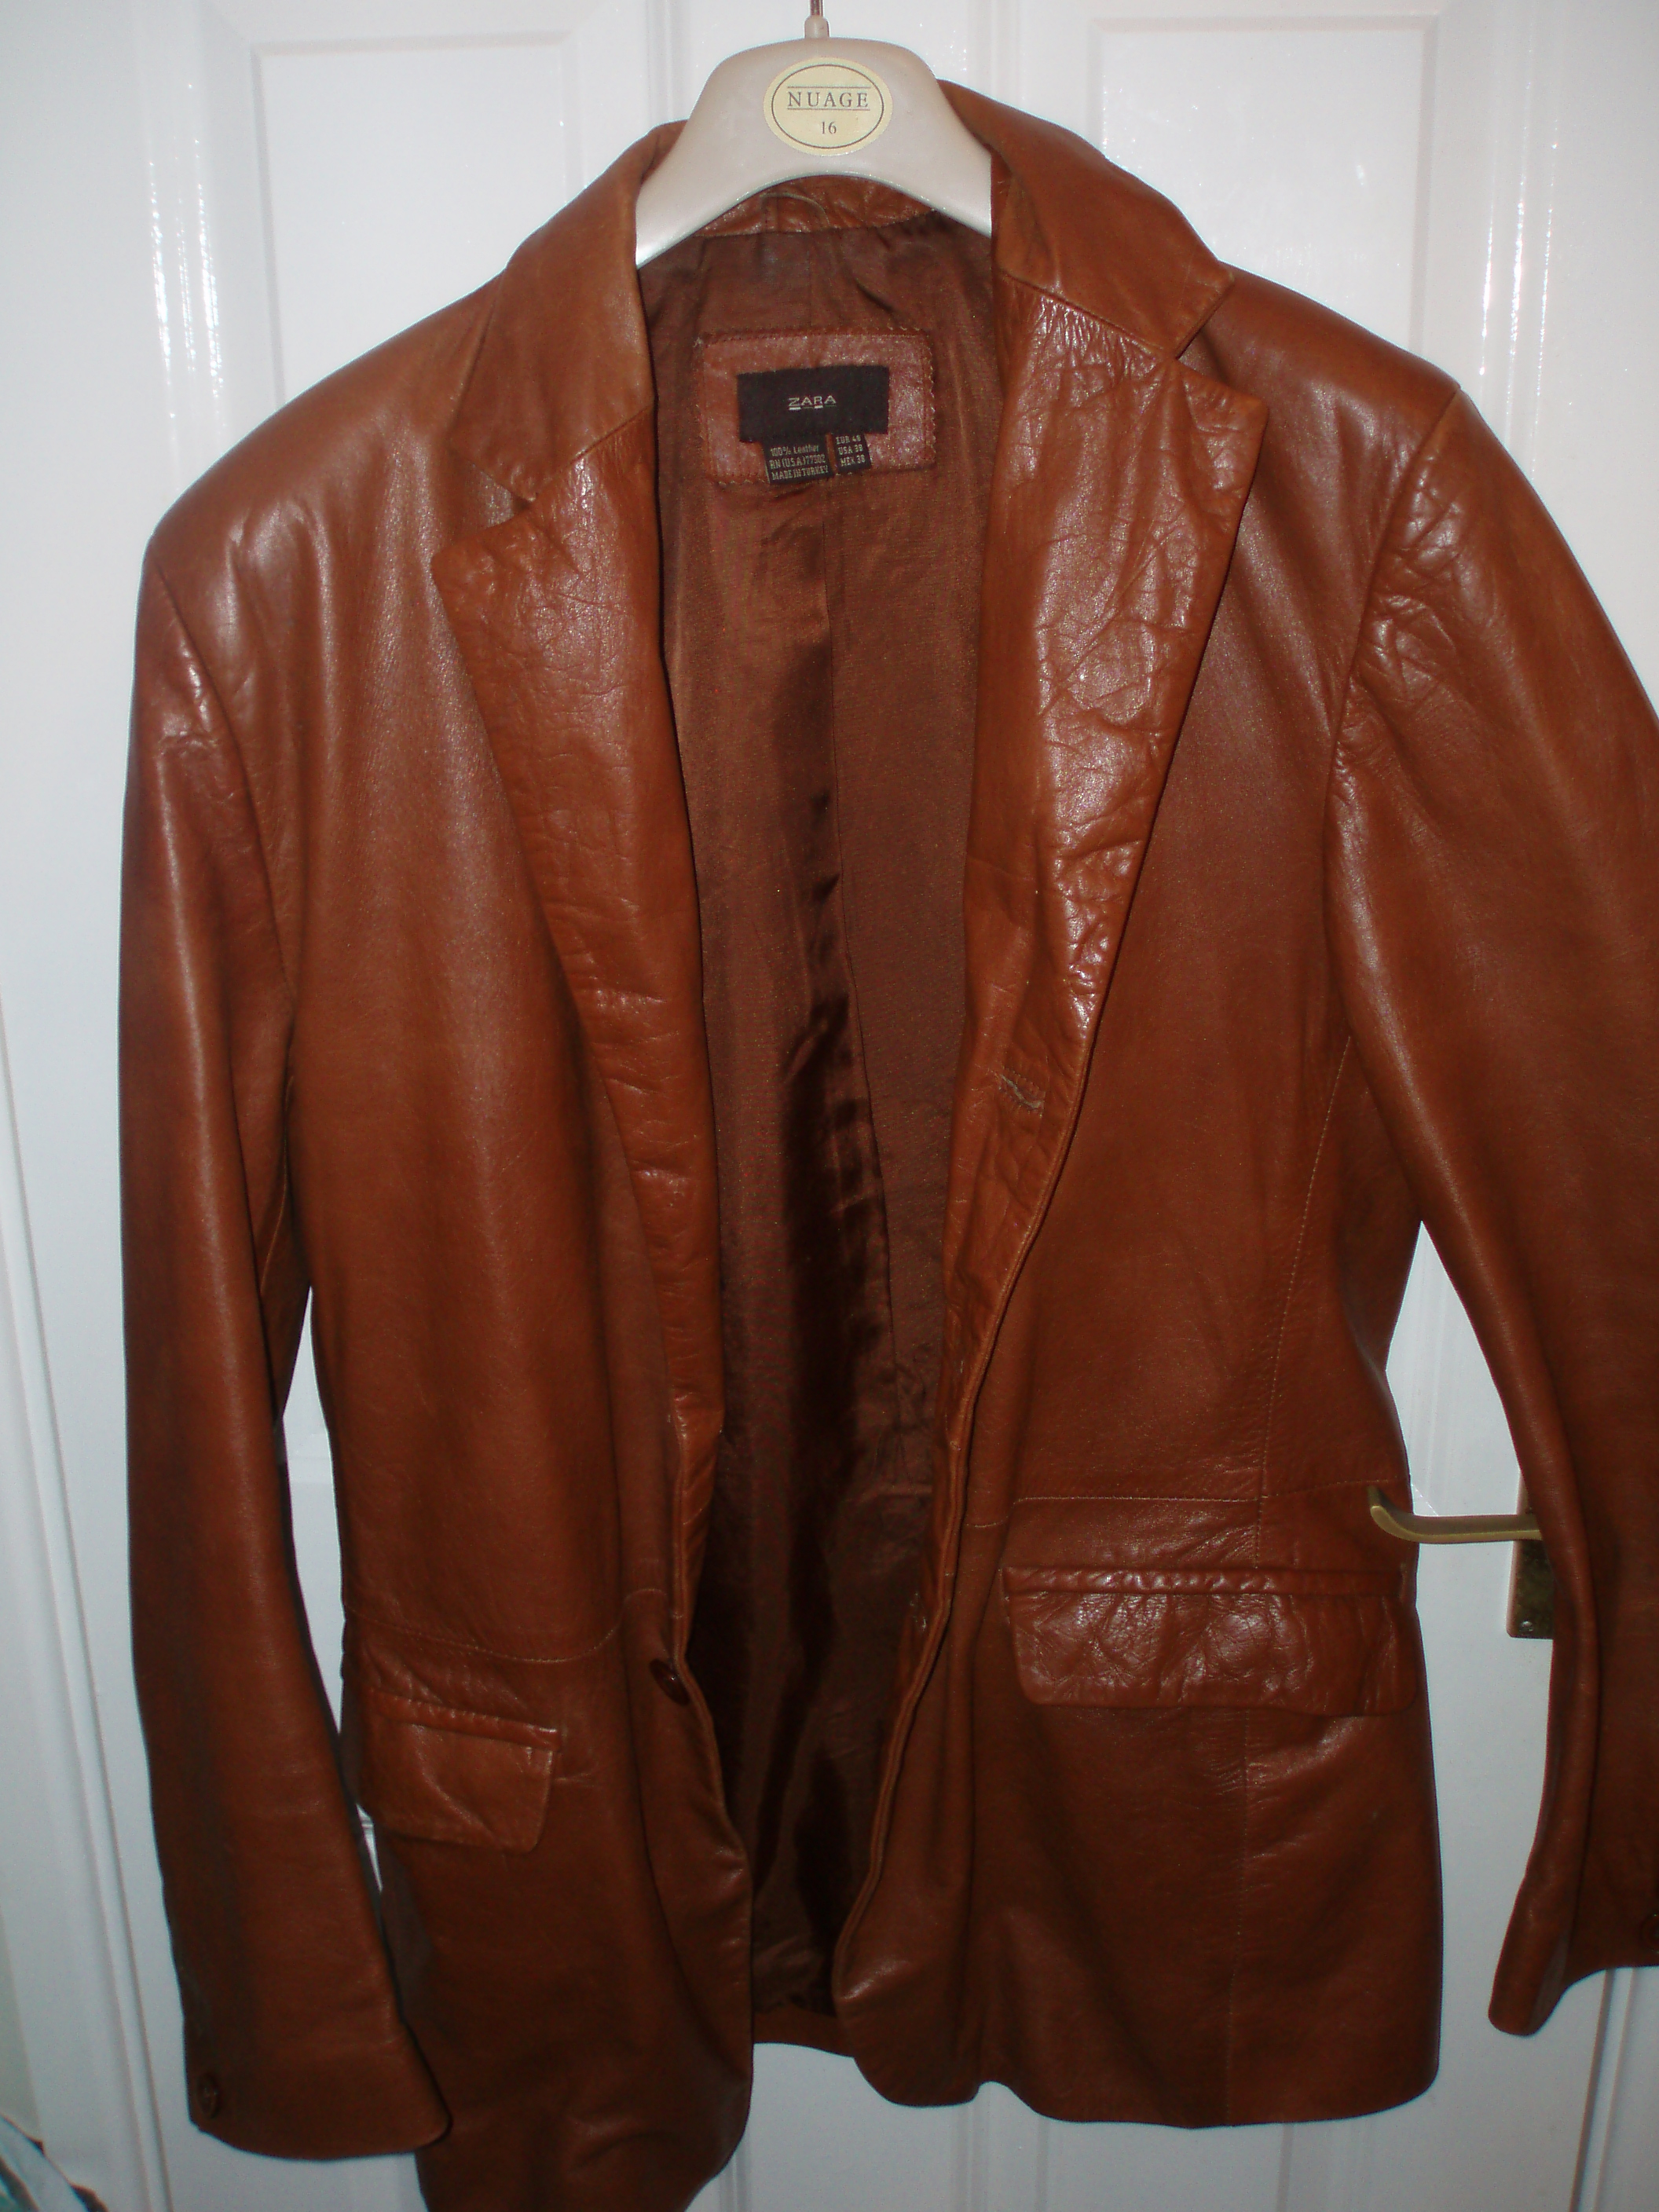 Leather jacket care - Leather Care Tips